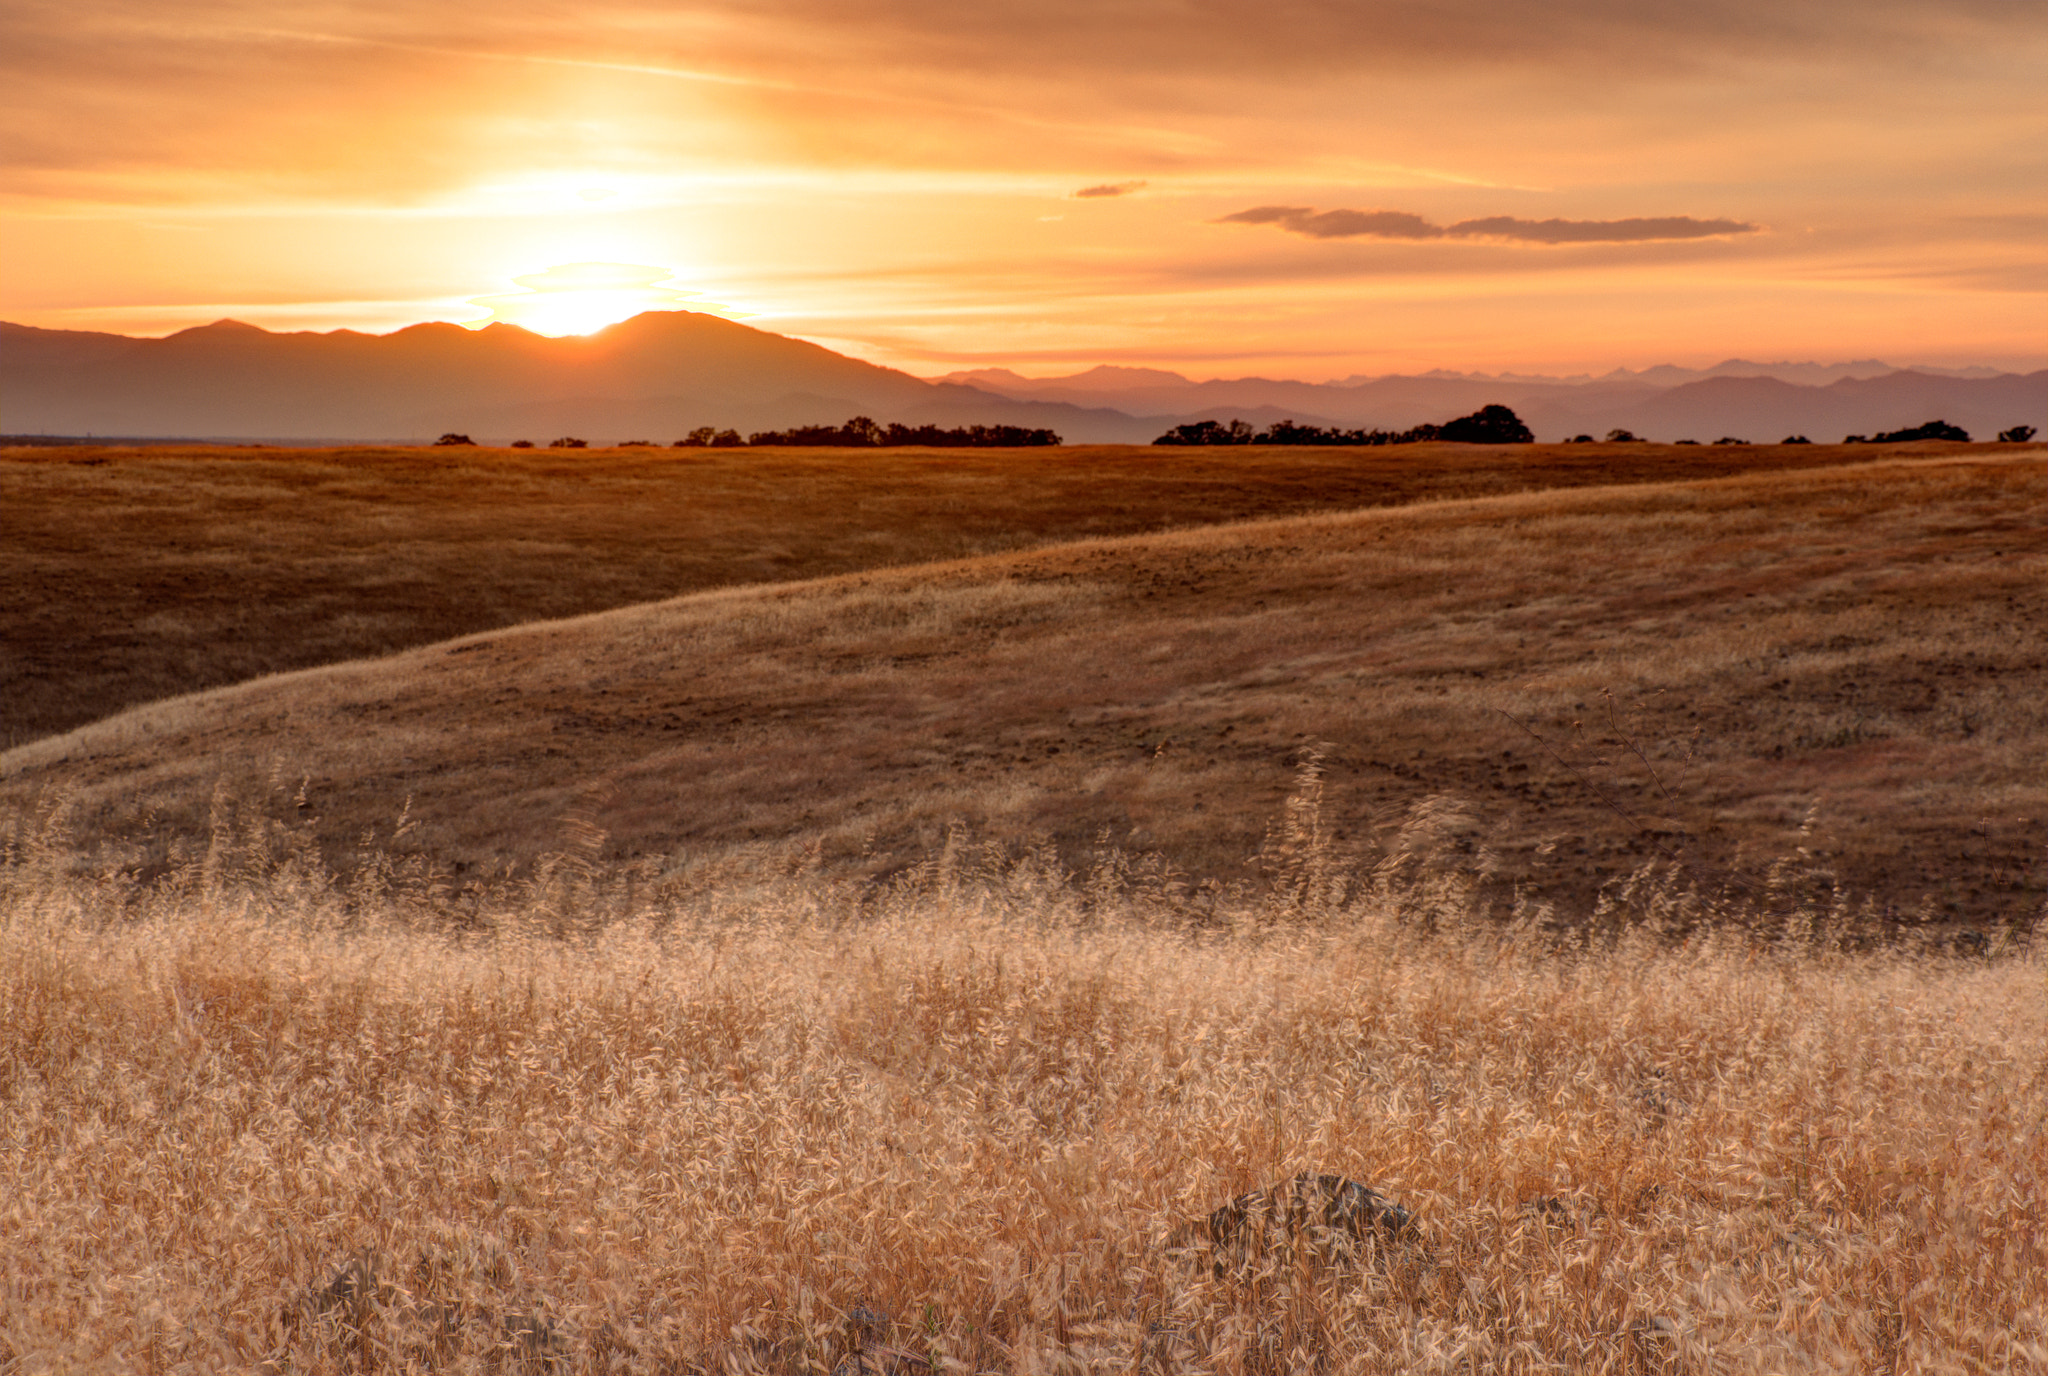 Photograph Sacramento Valley (Endless Hope) by Eric Leslie on 500px